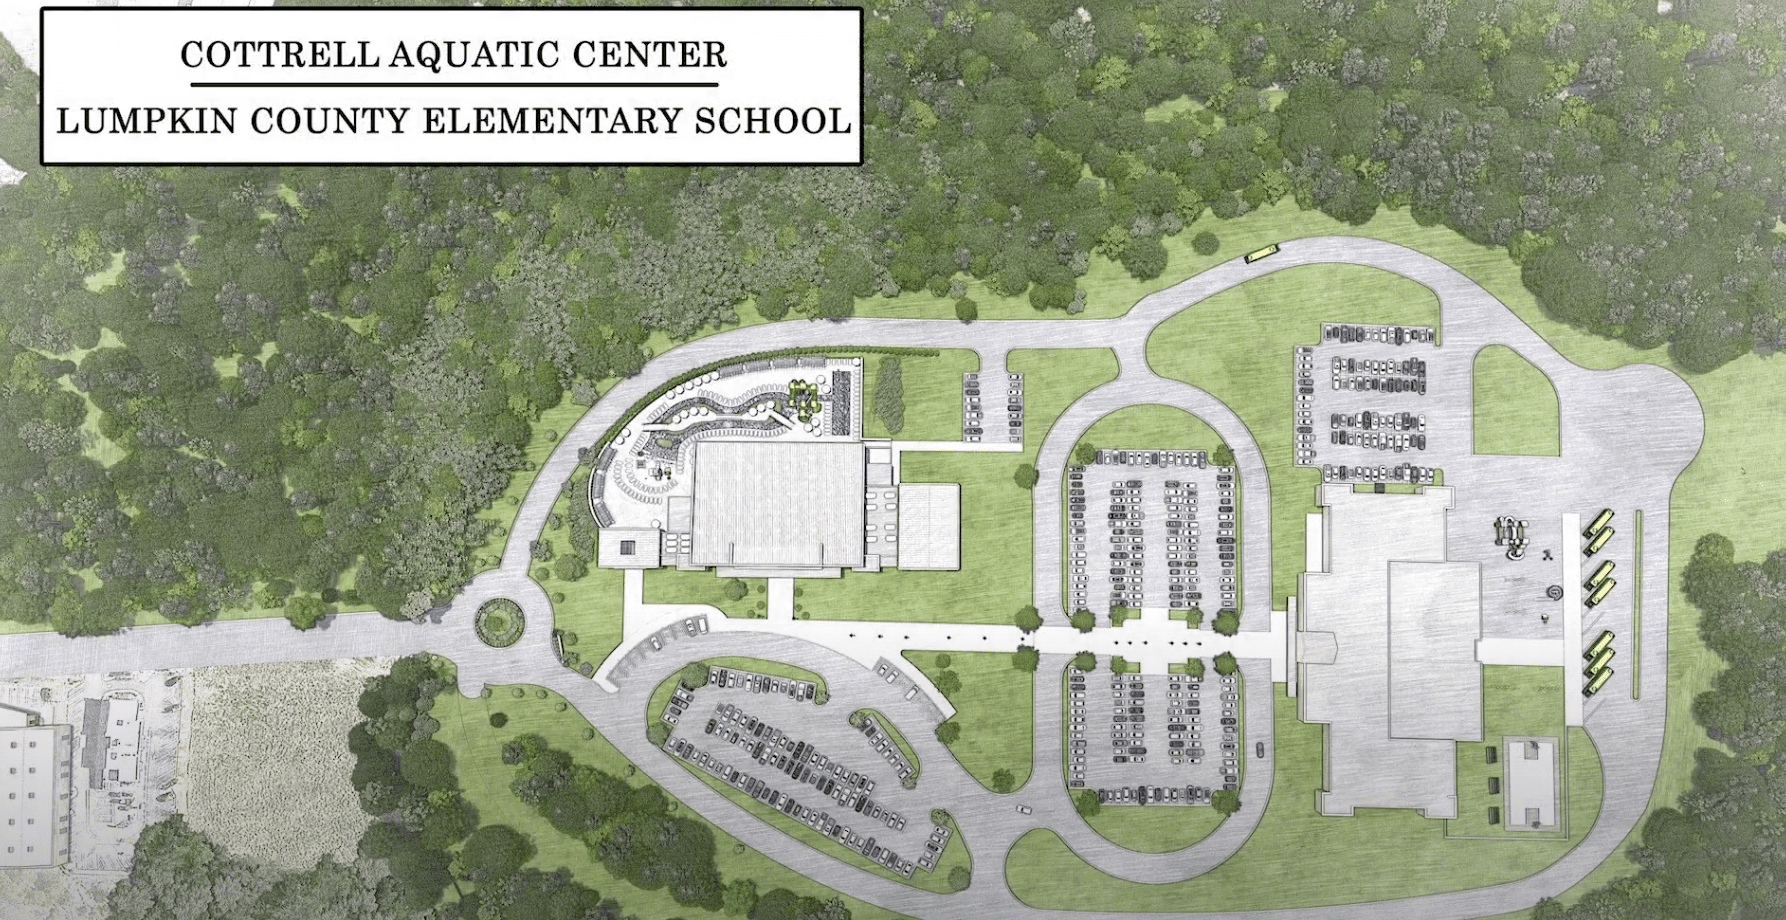 arial view of desired plan for Cottrell Aquatic Center